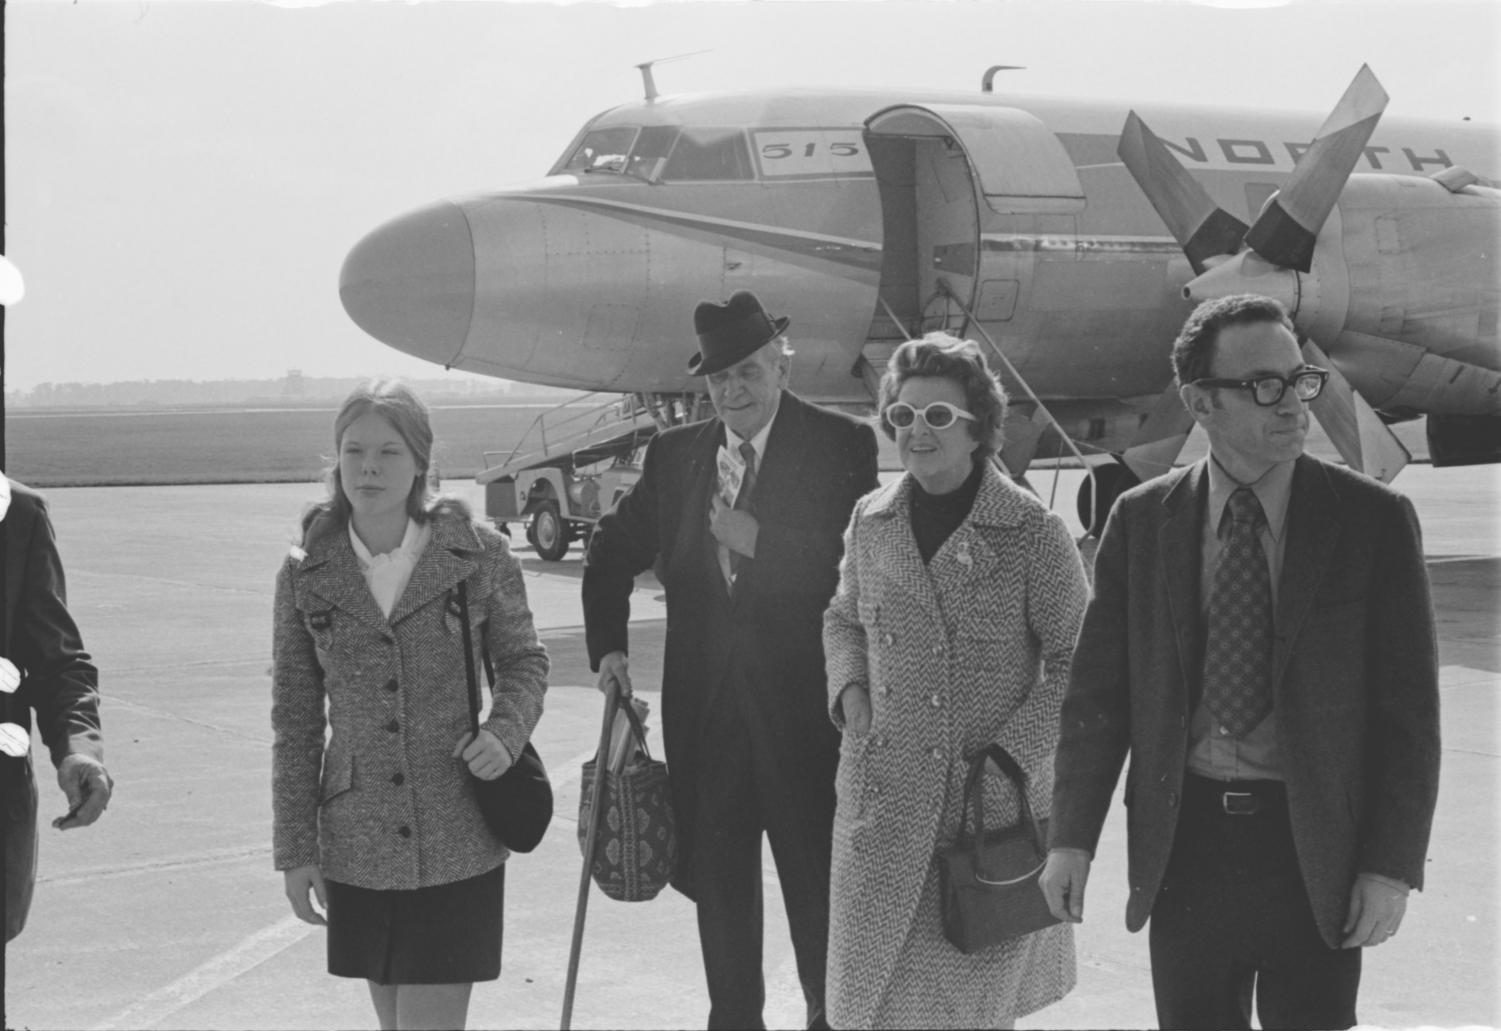 March (left) arrives at the Wittman Regional Airport in Oshkosh with his wife (right) and others.